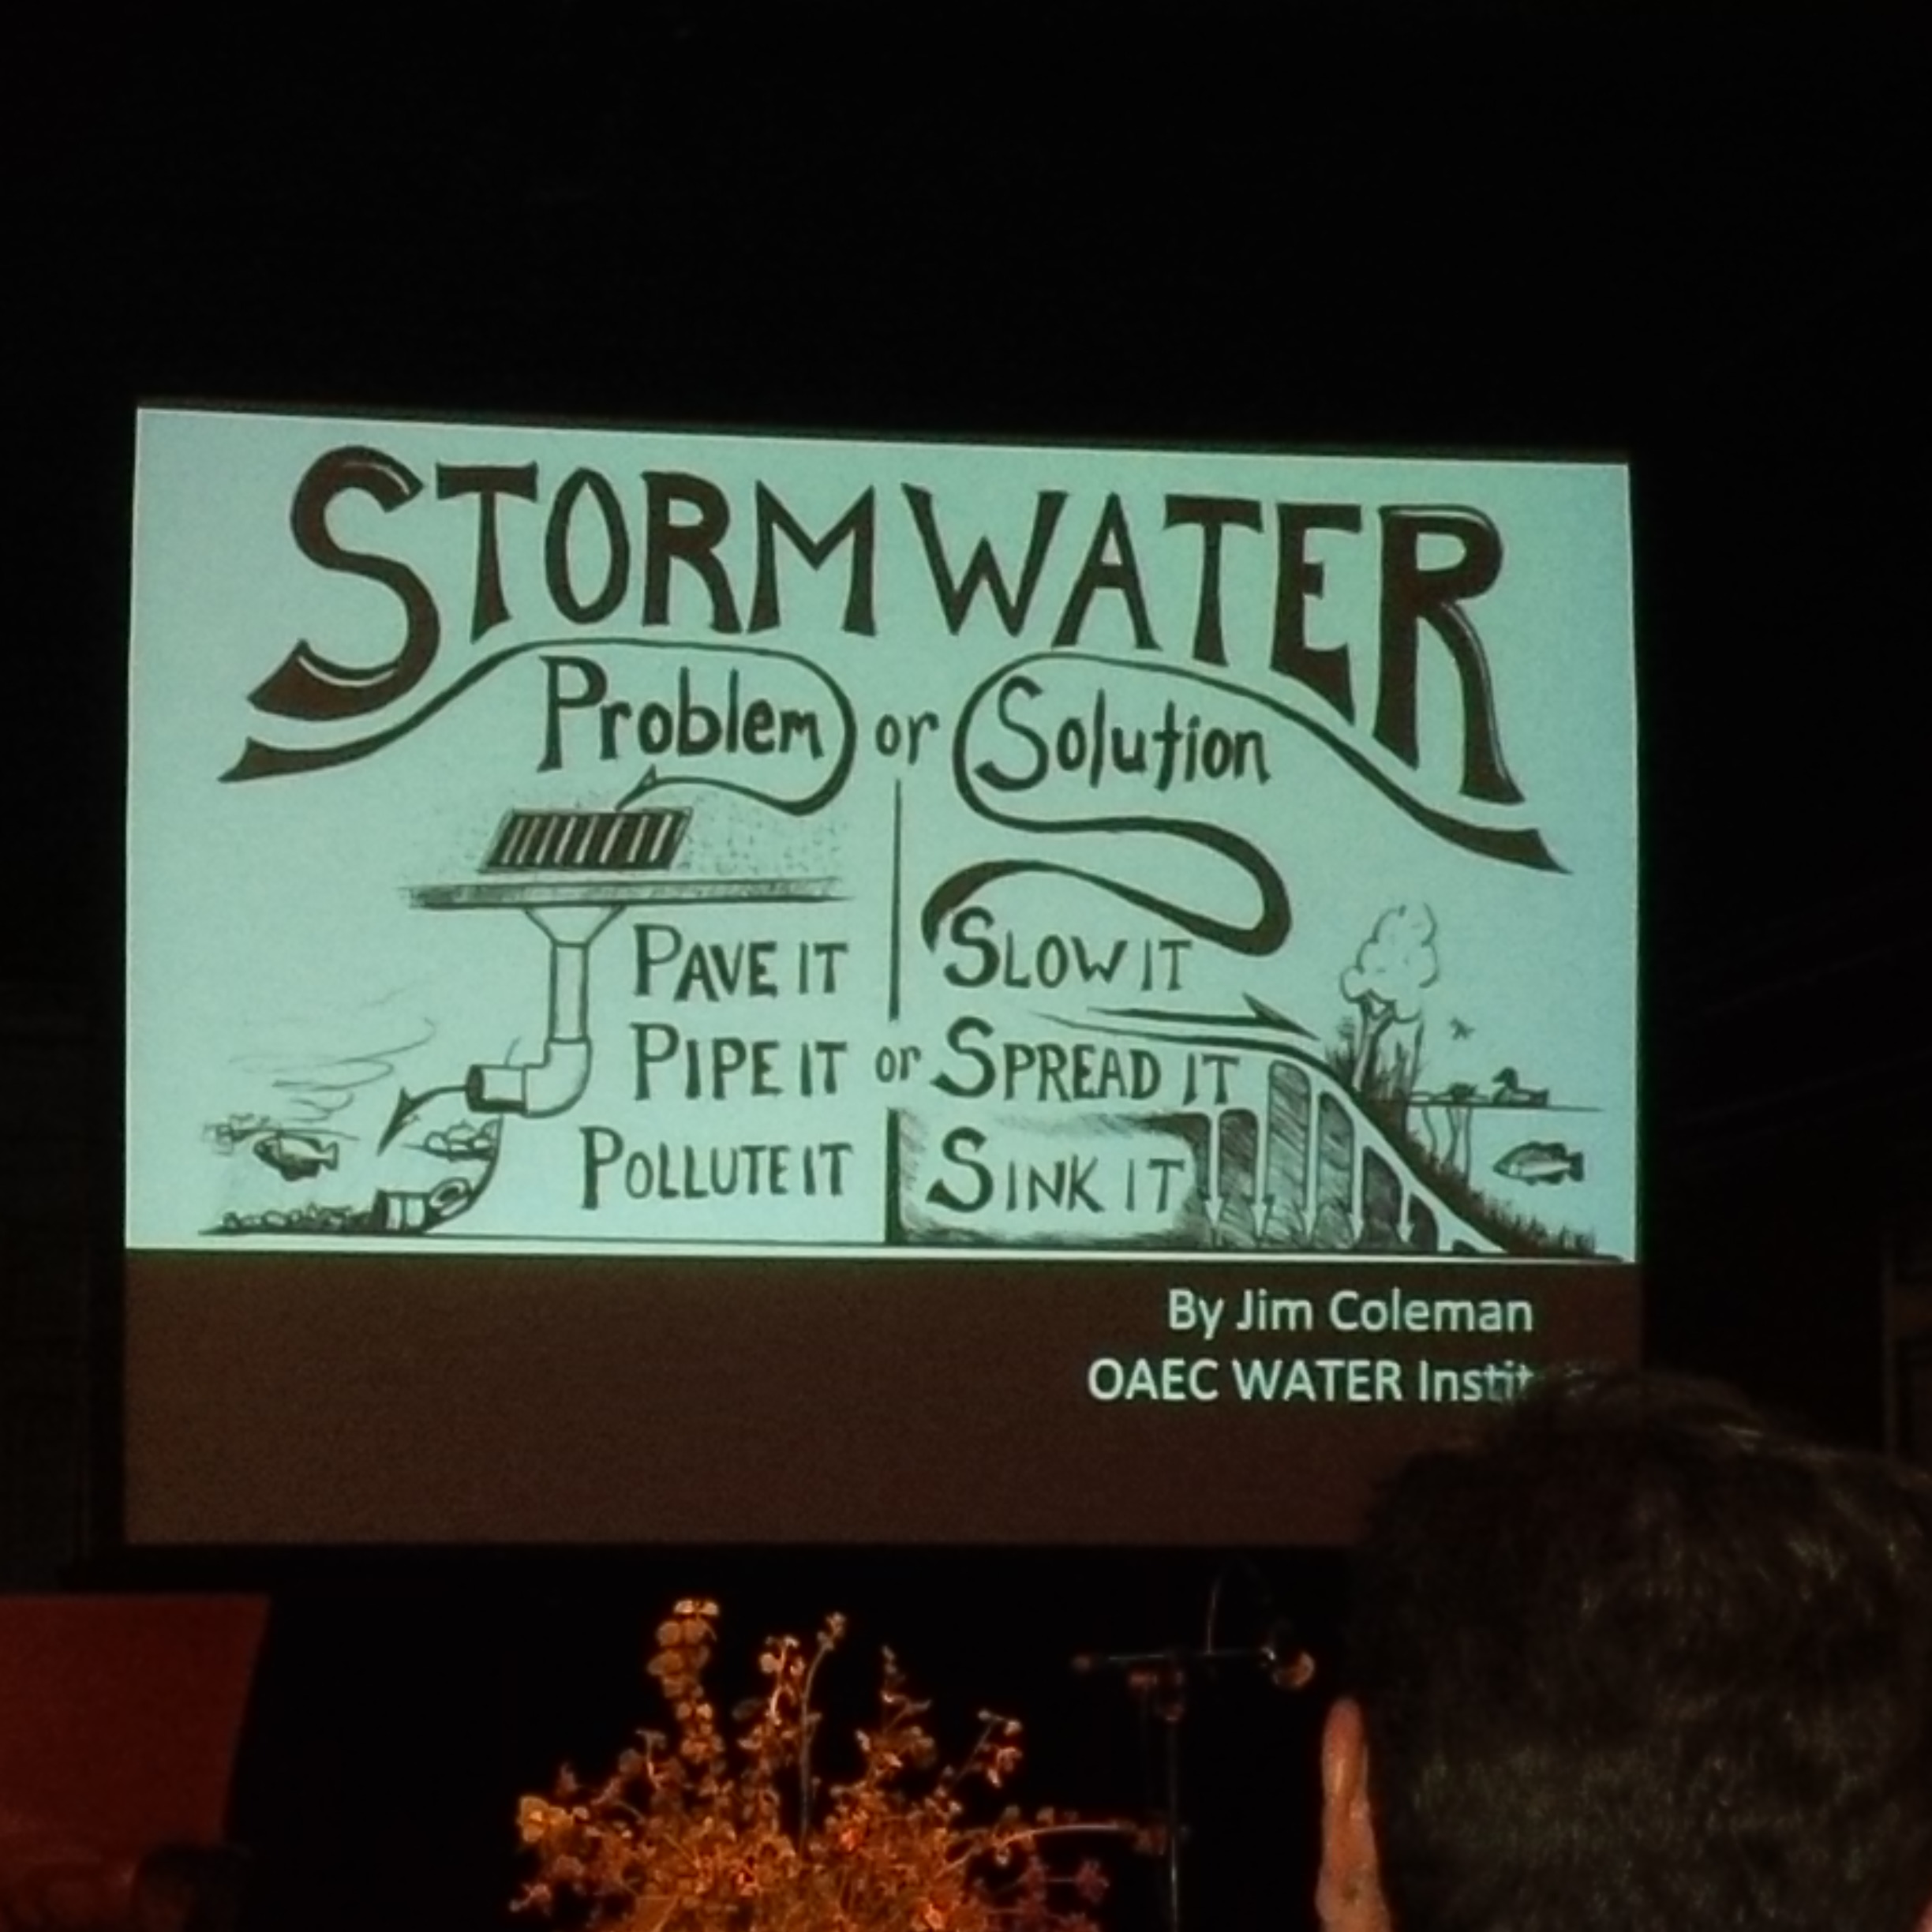 What we need to design our gardens to deal with our storm water